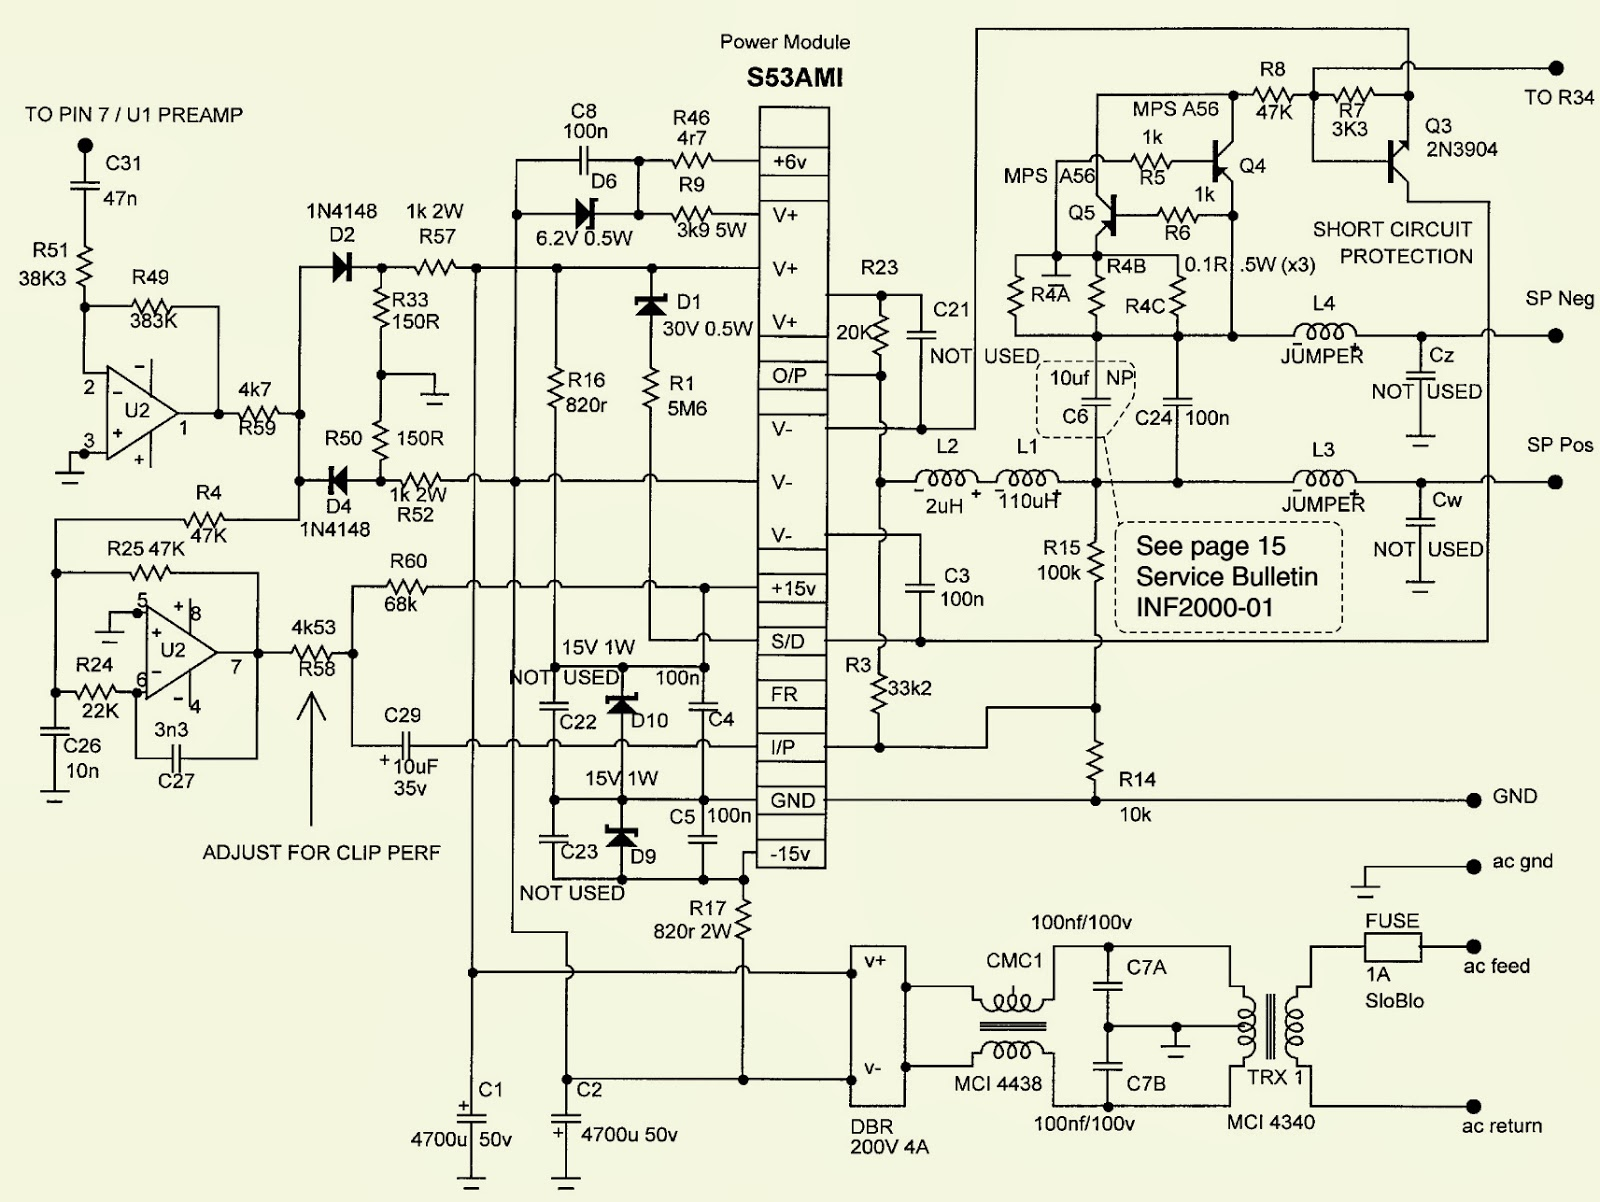 1998 Jeep Grand Cherokee Infinity Stereo Wiring Diagram 96 Pcm Subwoofer Get Free Image About